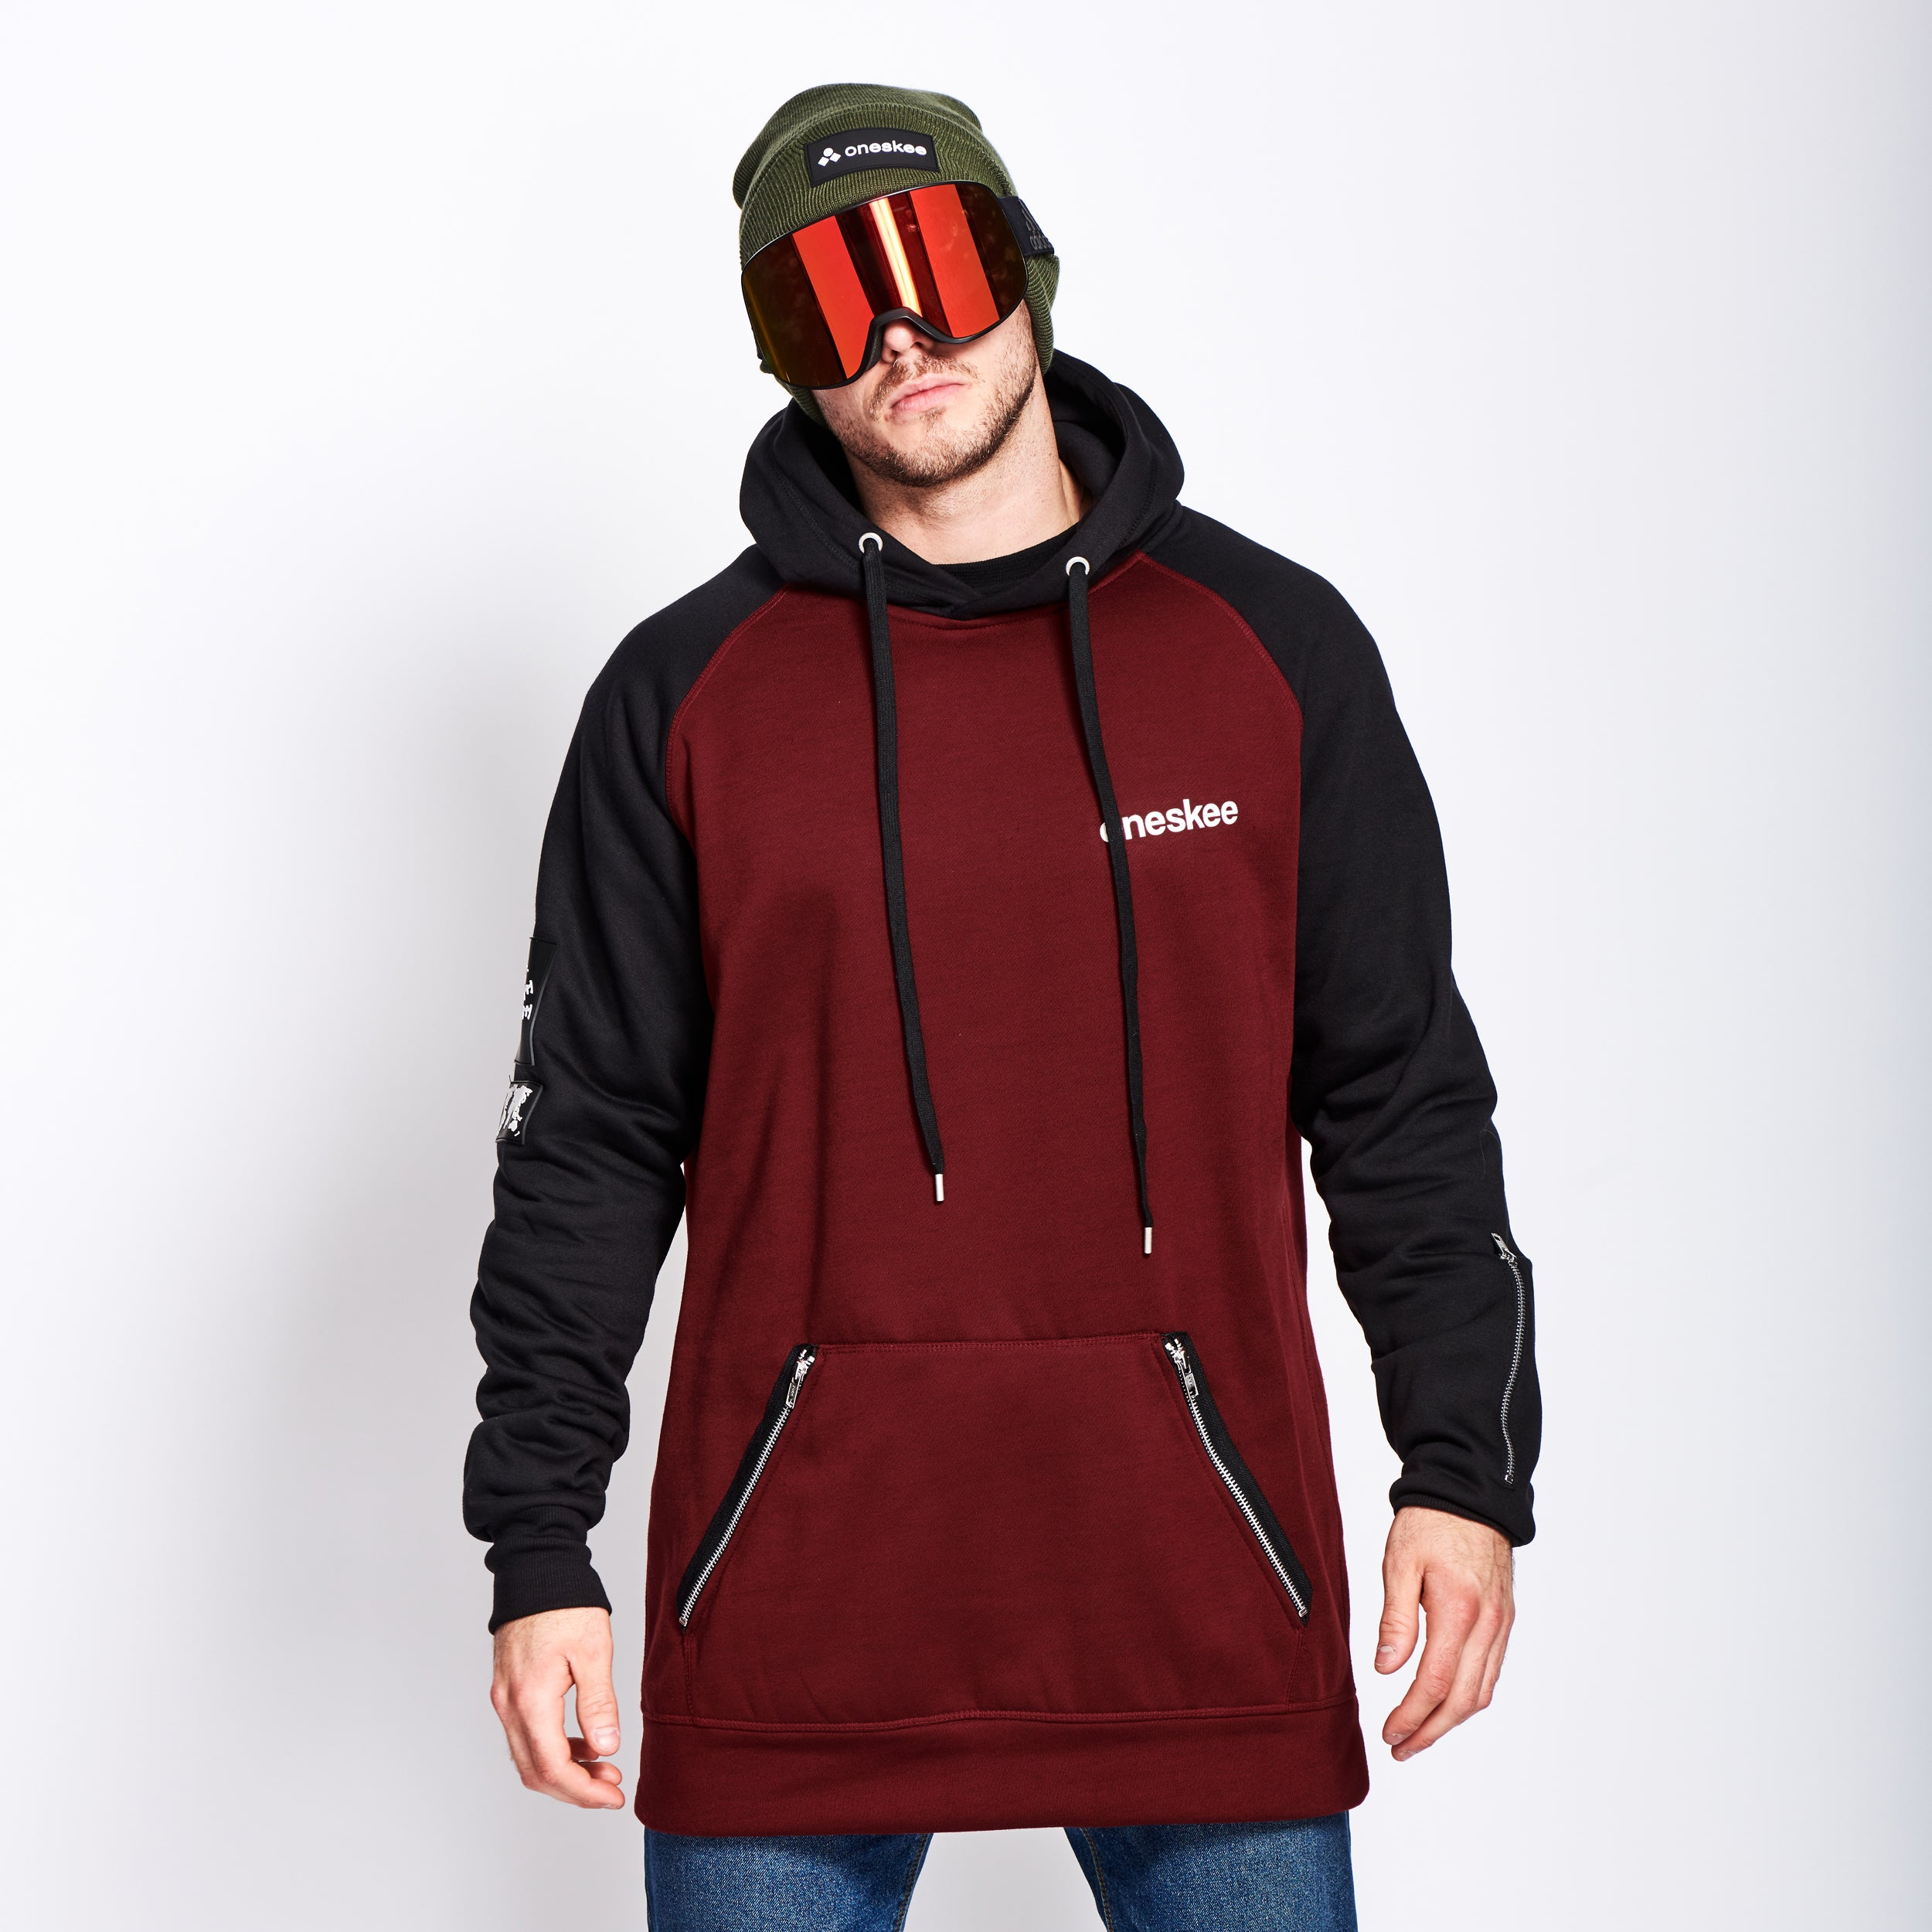 Men's Technical Raglan Hoodie - Burgundy image 3